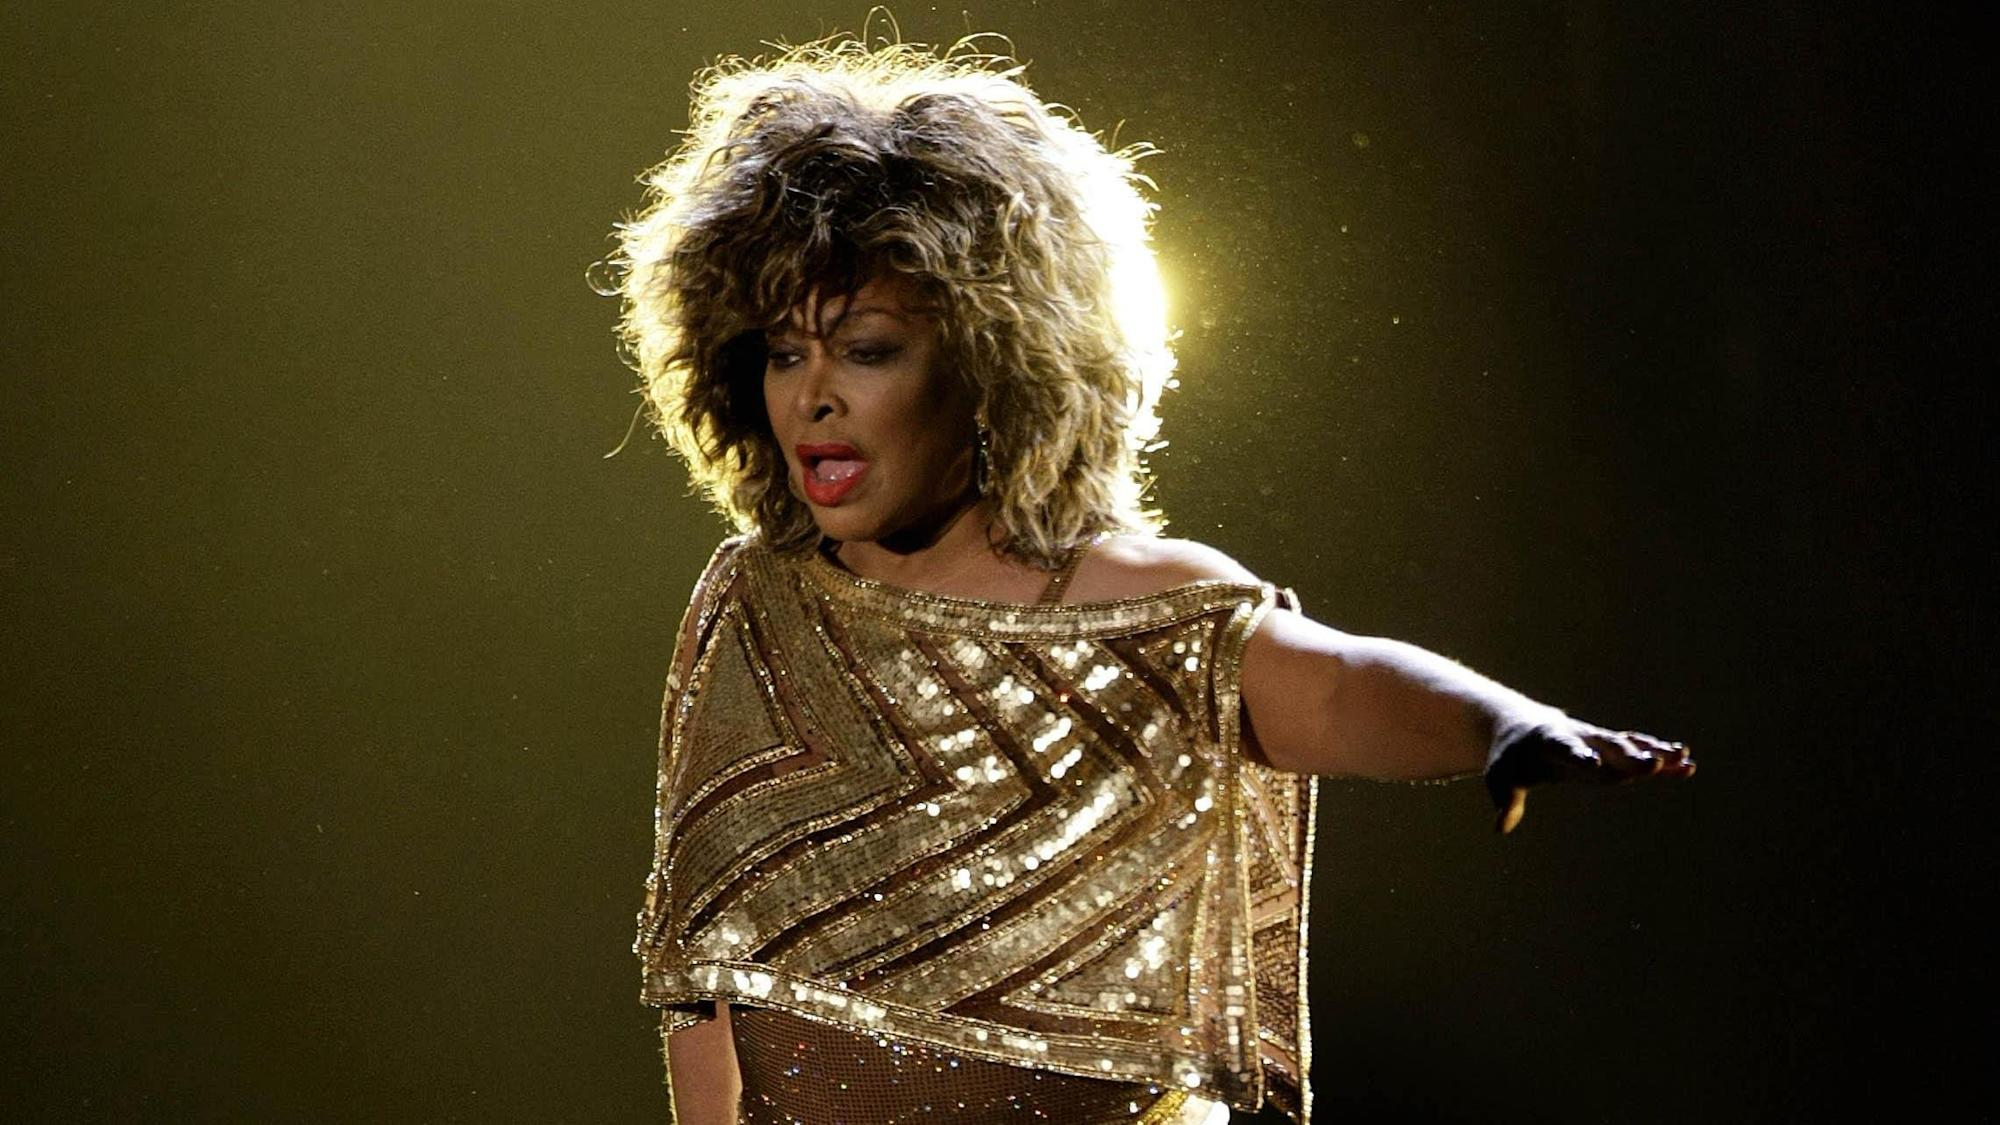 Jay-Z, Tina Turner and Foo Fighters among Rock & Roll Hall of Fame inductees